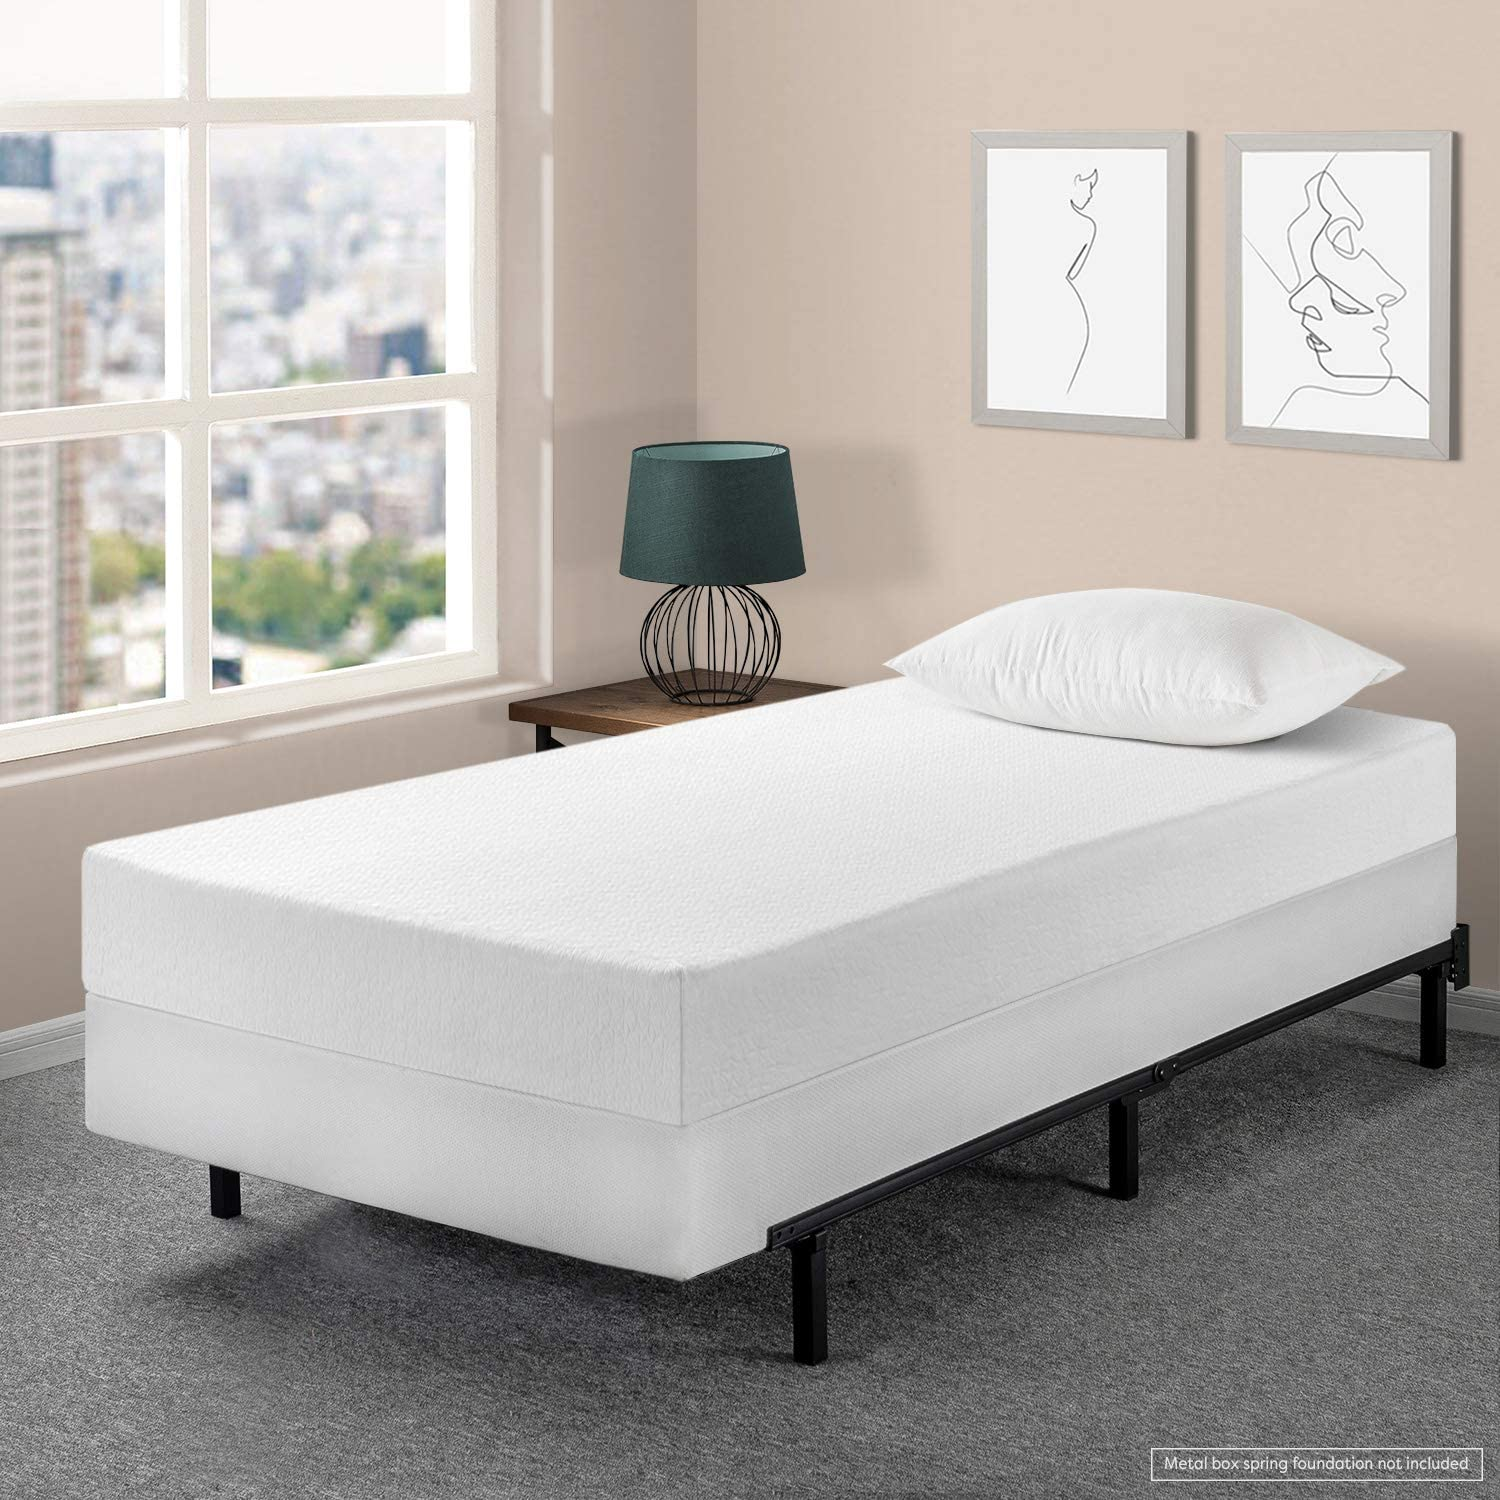 Best Price Mattress 8 Memory Foam Mattress 7.5 New Innovative Box Spring Set, Twin